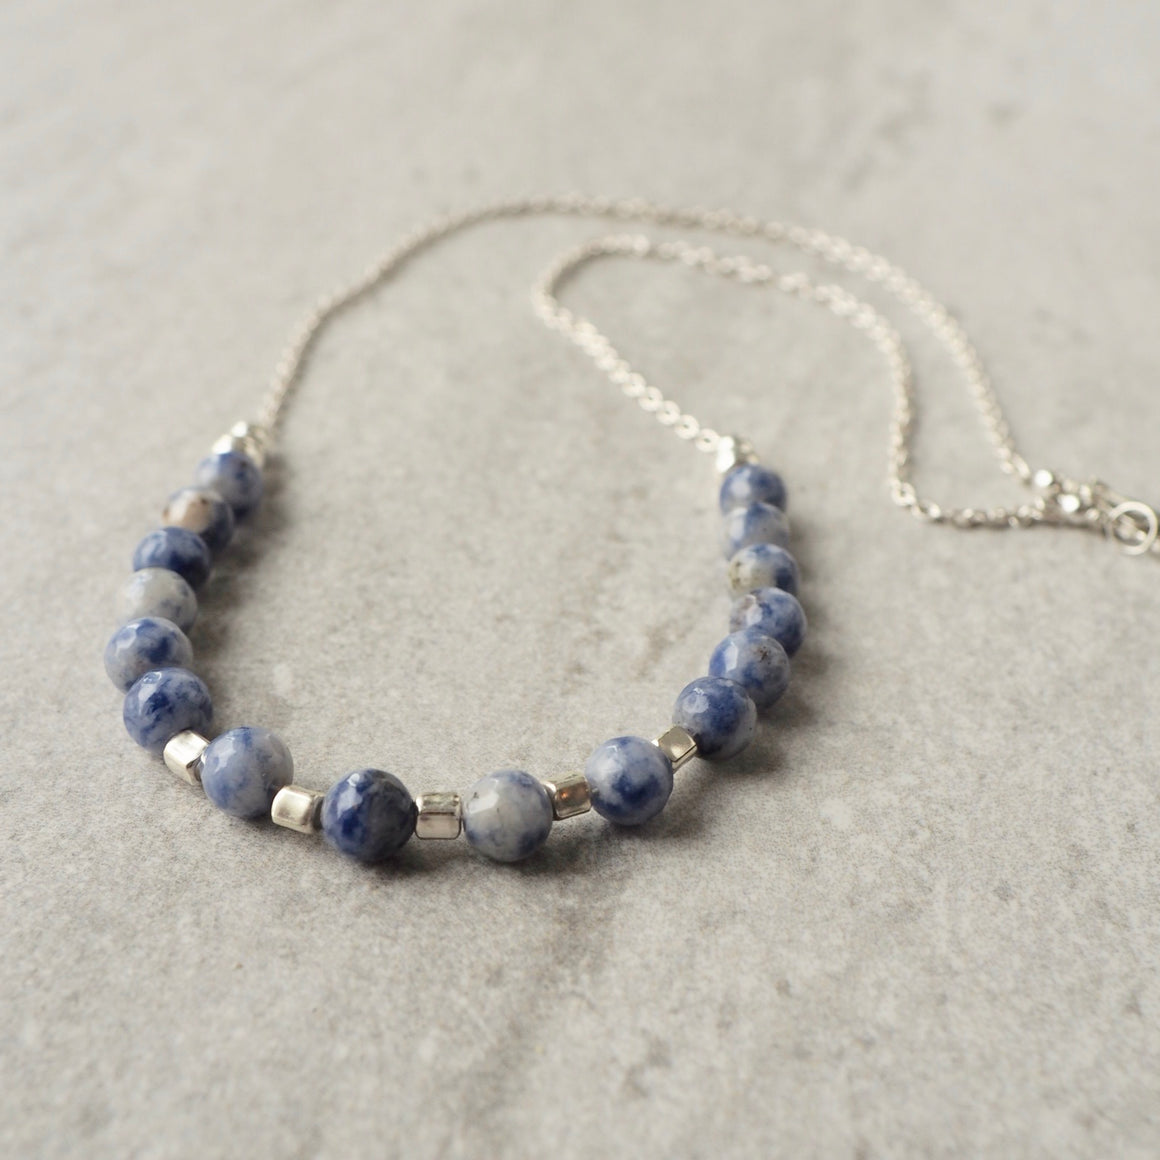 Blue Gemstone Necklace by Nancy Wallis Designs